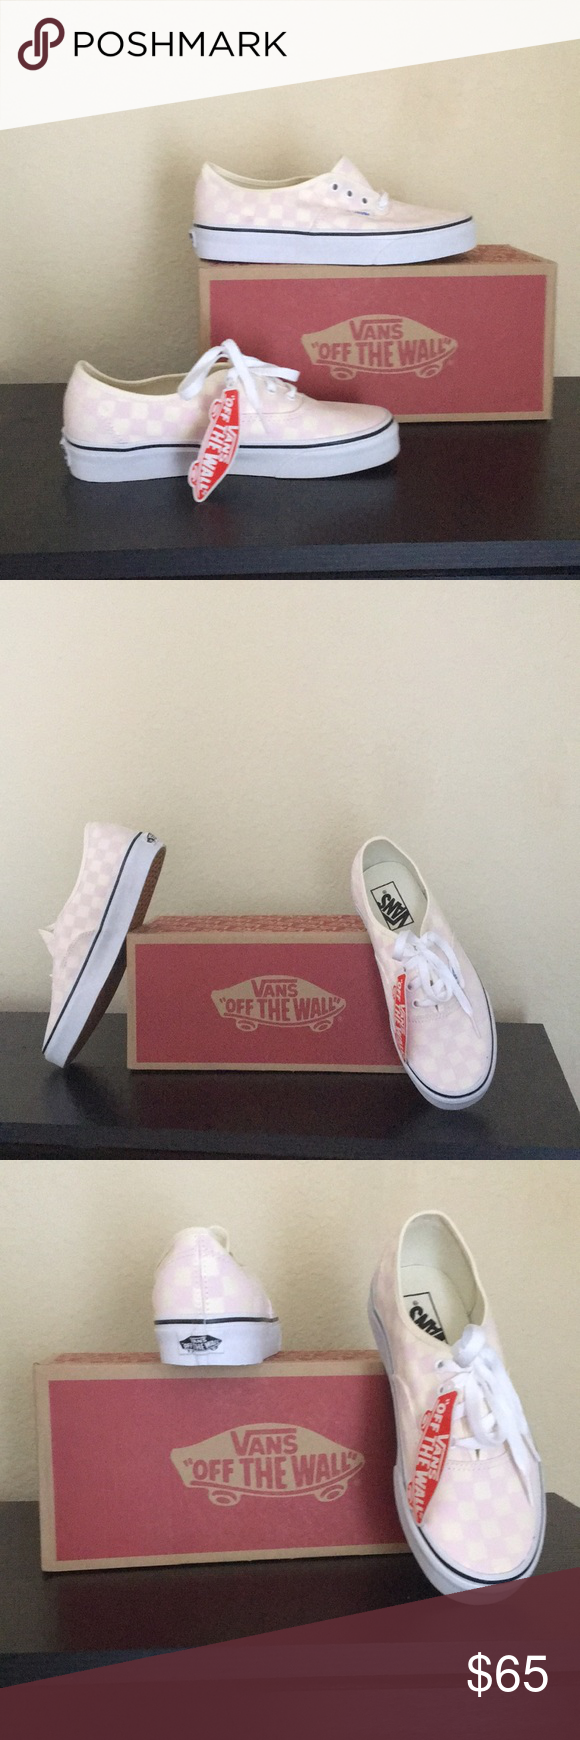 f36af53fe2 Vans Checkerboard Pink Authentic Shoes New with box Authentic Checkerboard  Chalk Pink - very light pink and cream color. Sizes shown in Women s Vans  Shoes ...